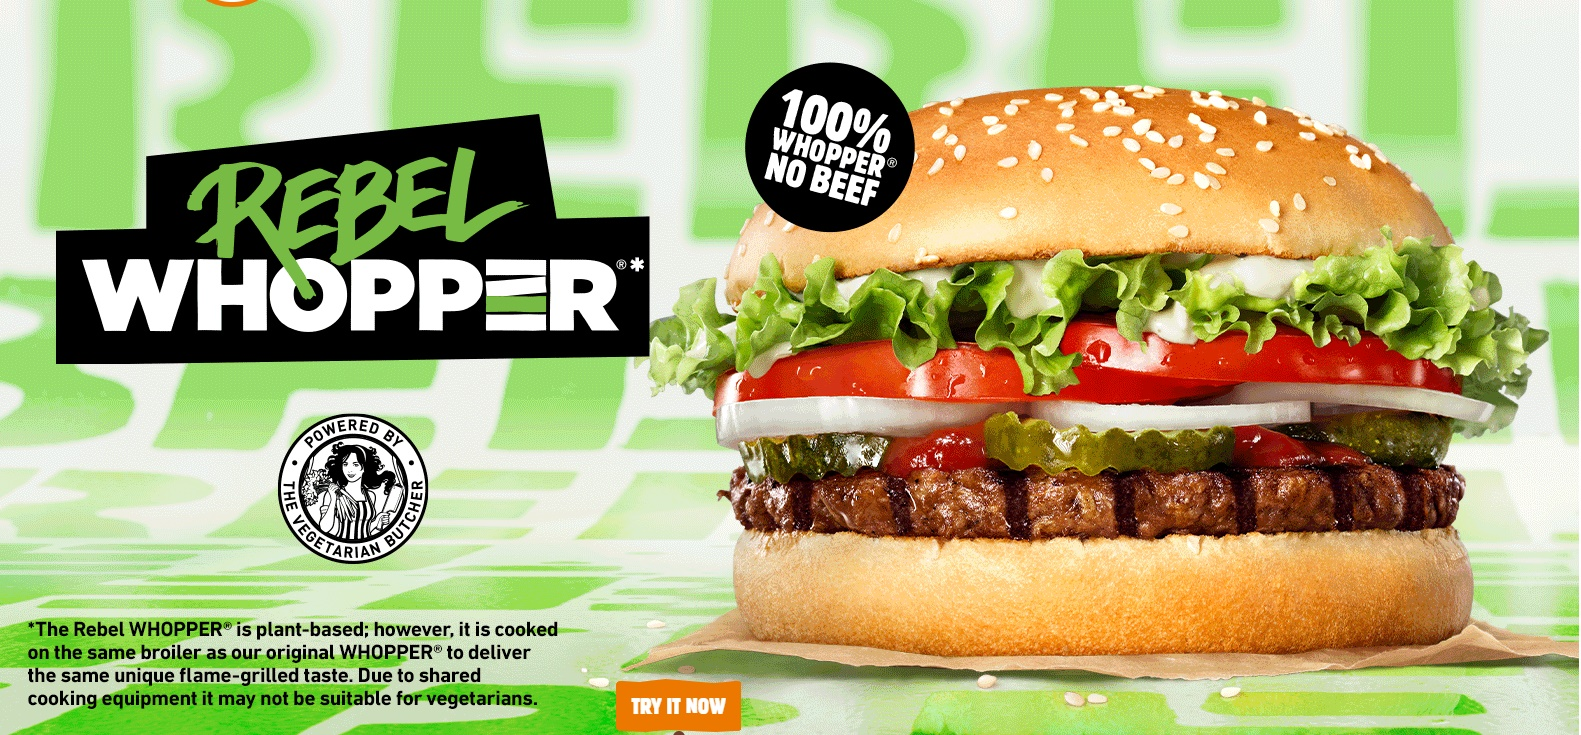 Rebel Whopper Burger King Uk Burger Price Calories Review 2020